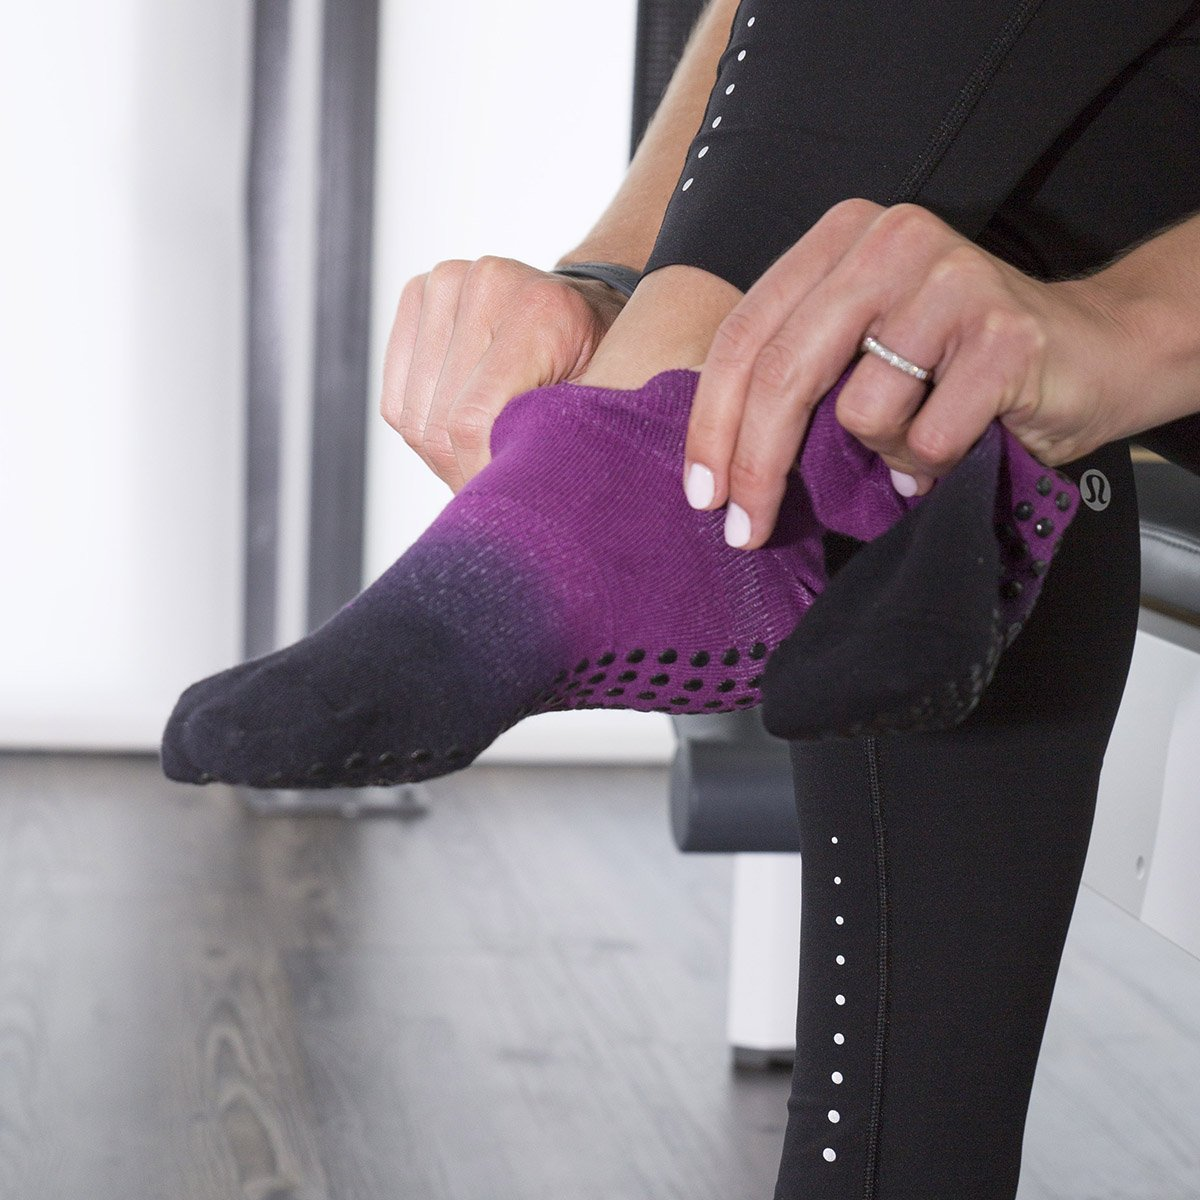 Great Soles Ombre Dyed Grip Socks for Women - Non Slip Yoga Socks for Pilates, Barre, Ballet (Berry/Black) by Great Soles (Image #6)